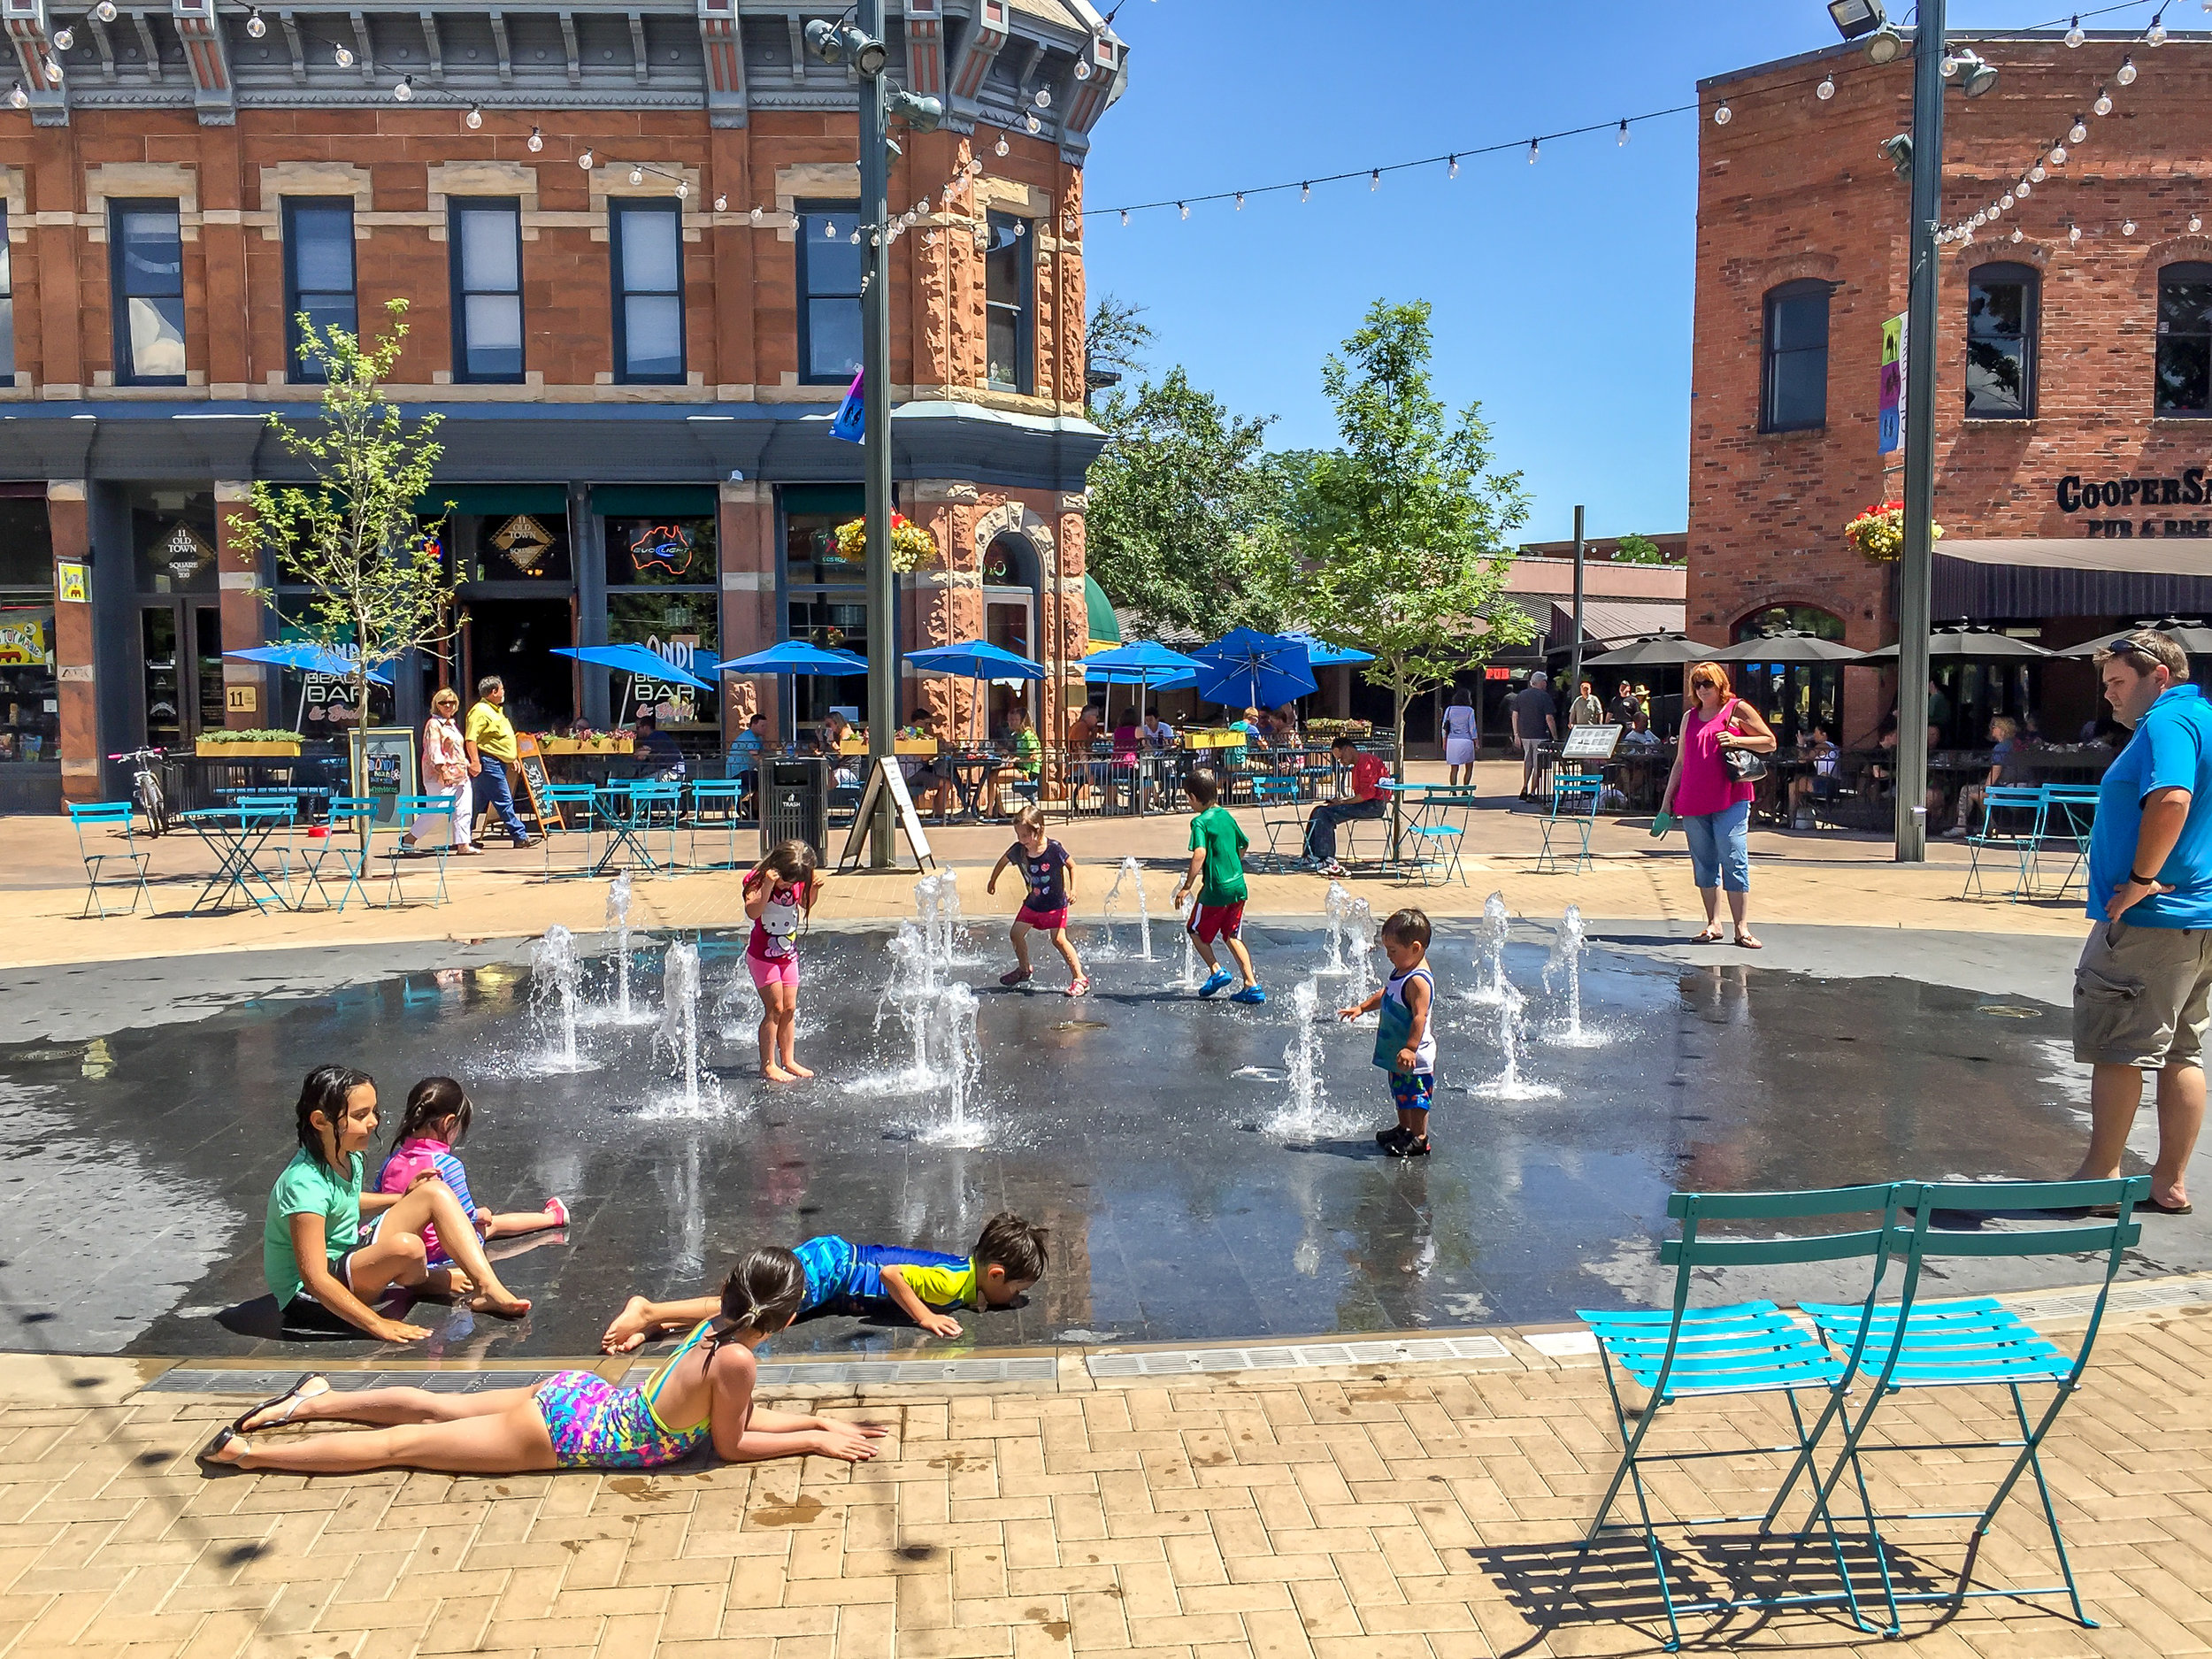 Old_Town_Square_Pop_Jet_Fountain-edit (1 of 1).jpg